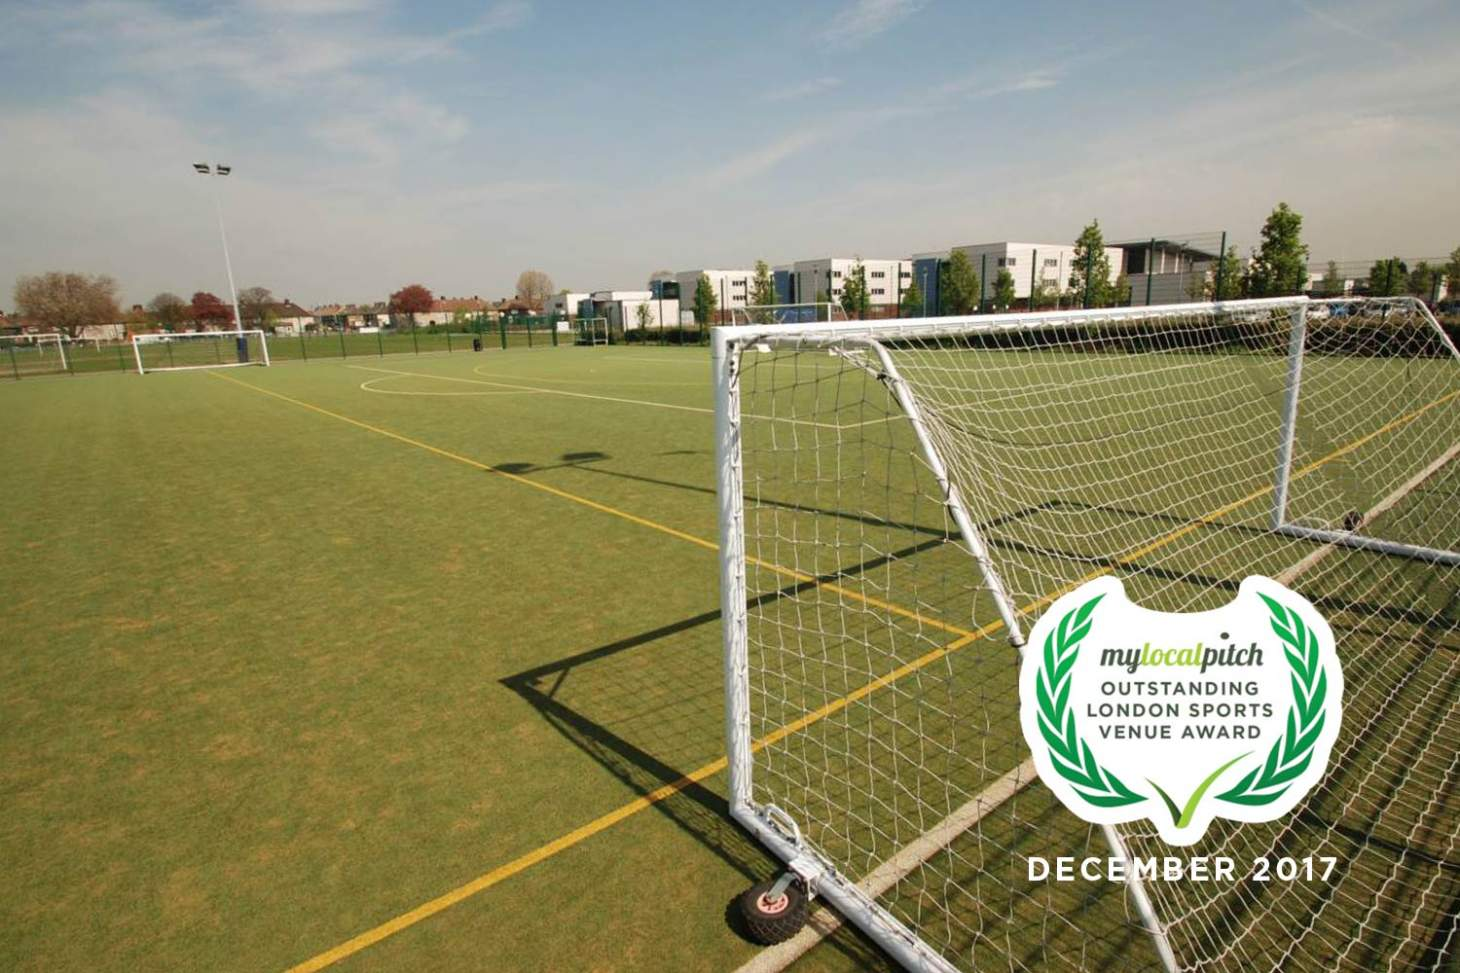 Castle Green Leisure Centre Outdoor | Astroturf hockey pitch